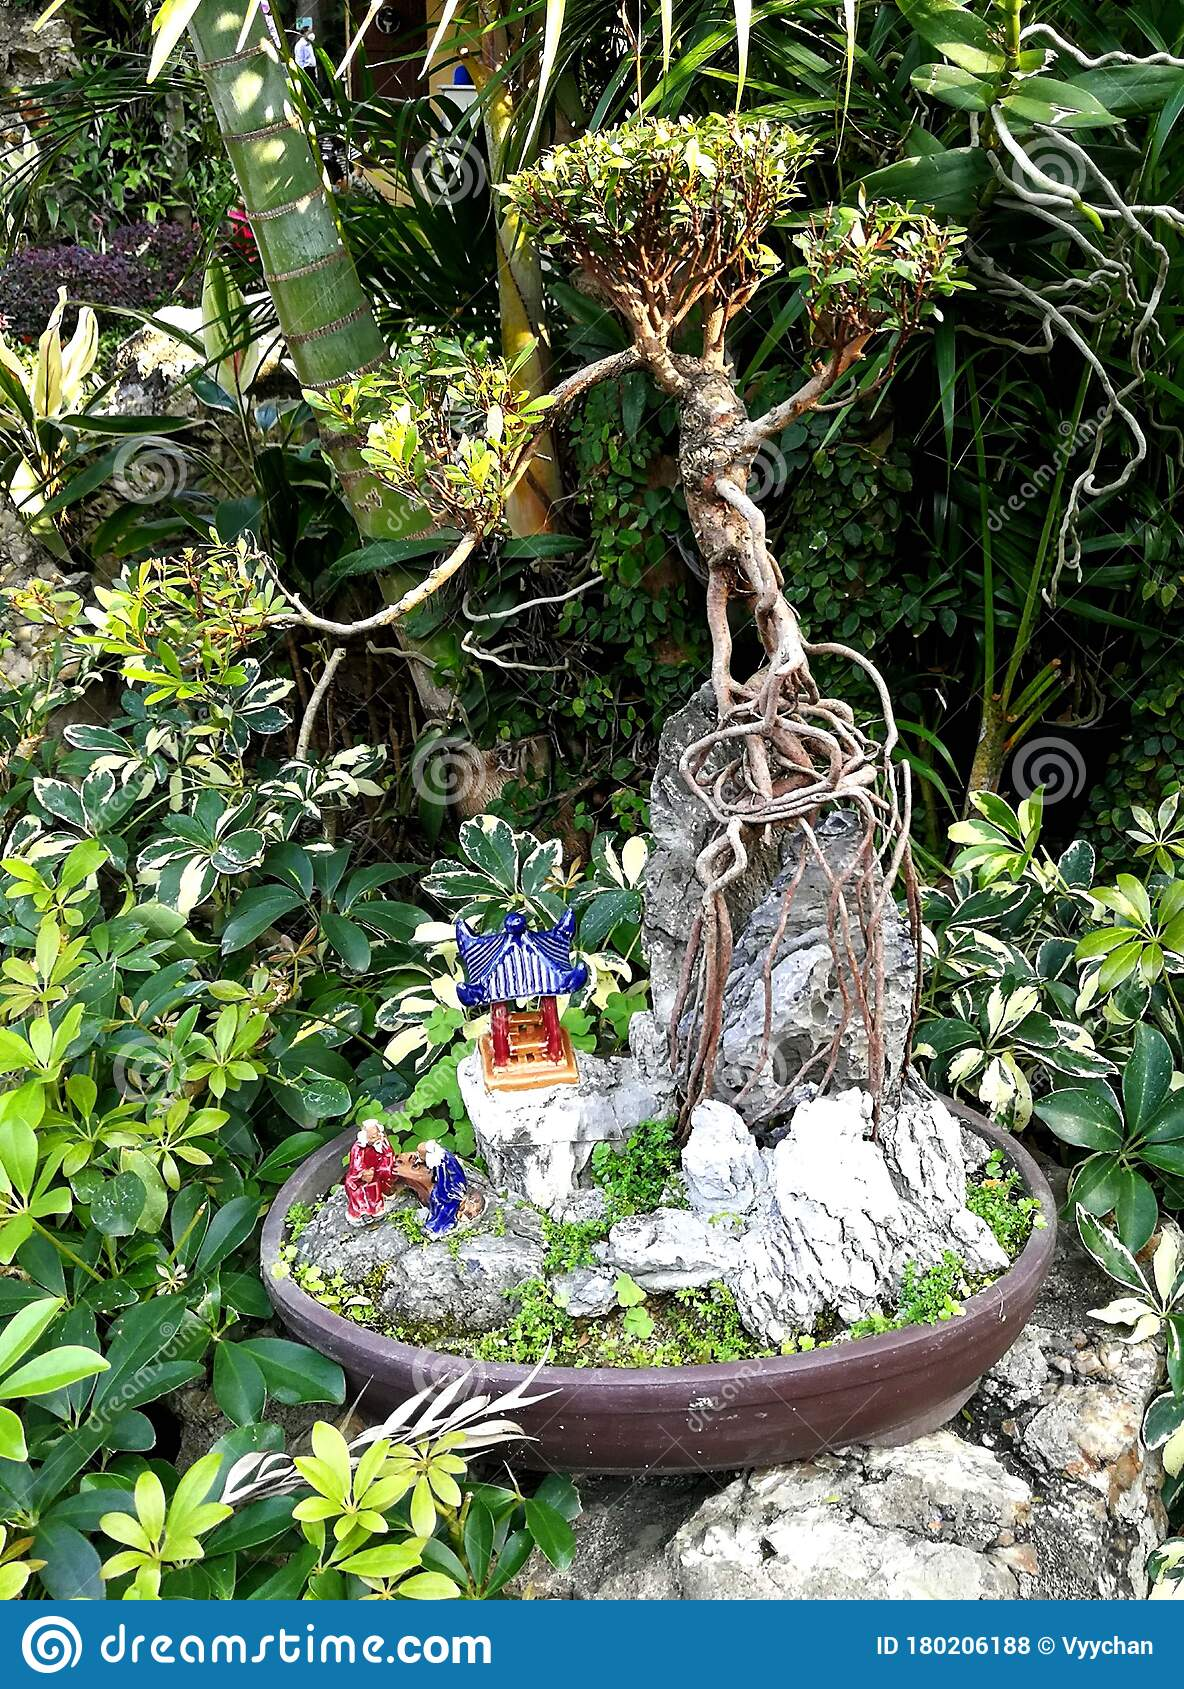 2020 Macao Chinese Garden Bonsai Miniature Tree Pot Plant Blooms Blooming Lou Lim Ieoc Garden Spring Blossom Display Spring Summer Editorial Stock Photo Image Of Garden Beauty 180206188